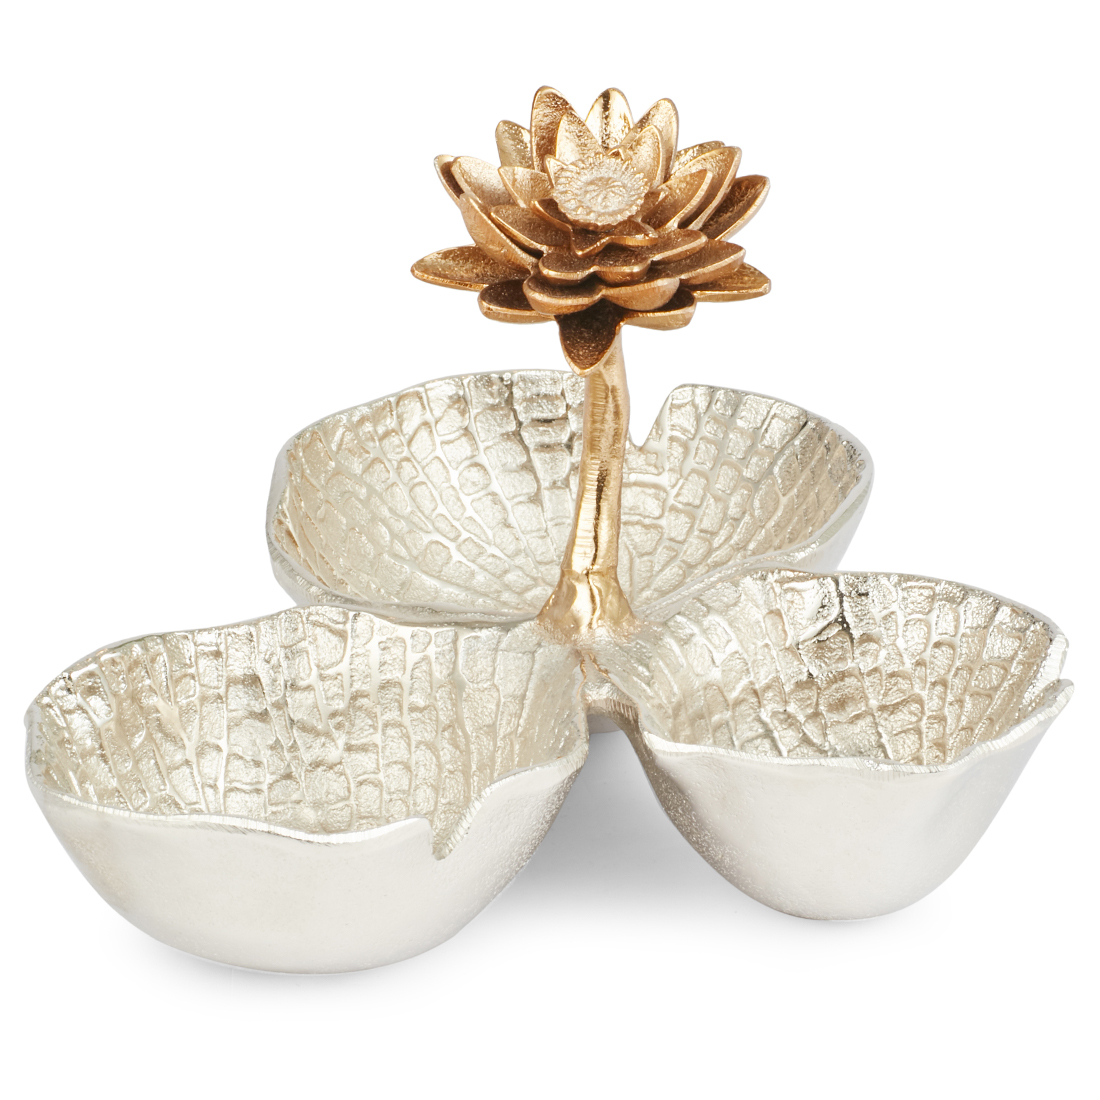 Jashn Silver Three Bowl Dish With Flower Accent Metal Table D in Silver Colour by Living Essence